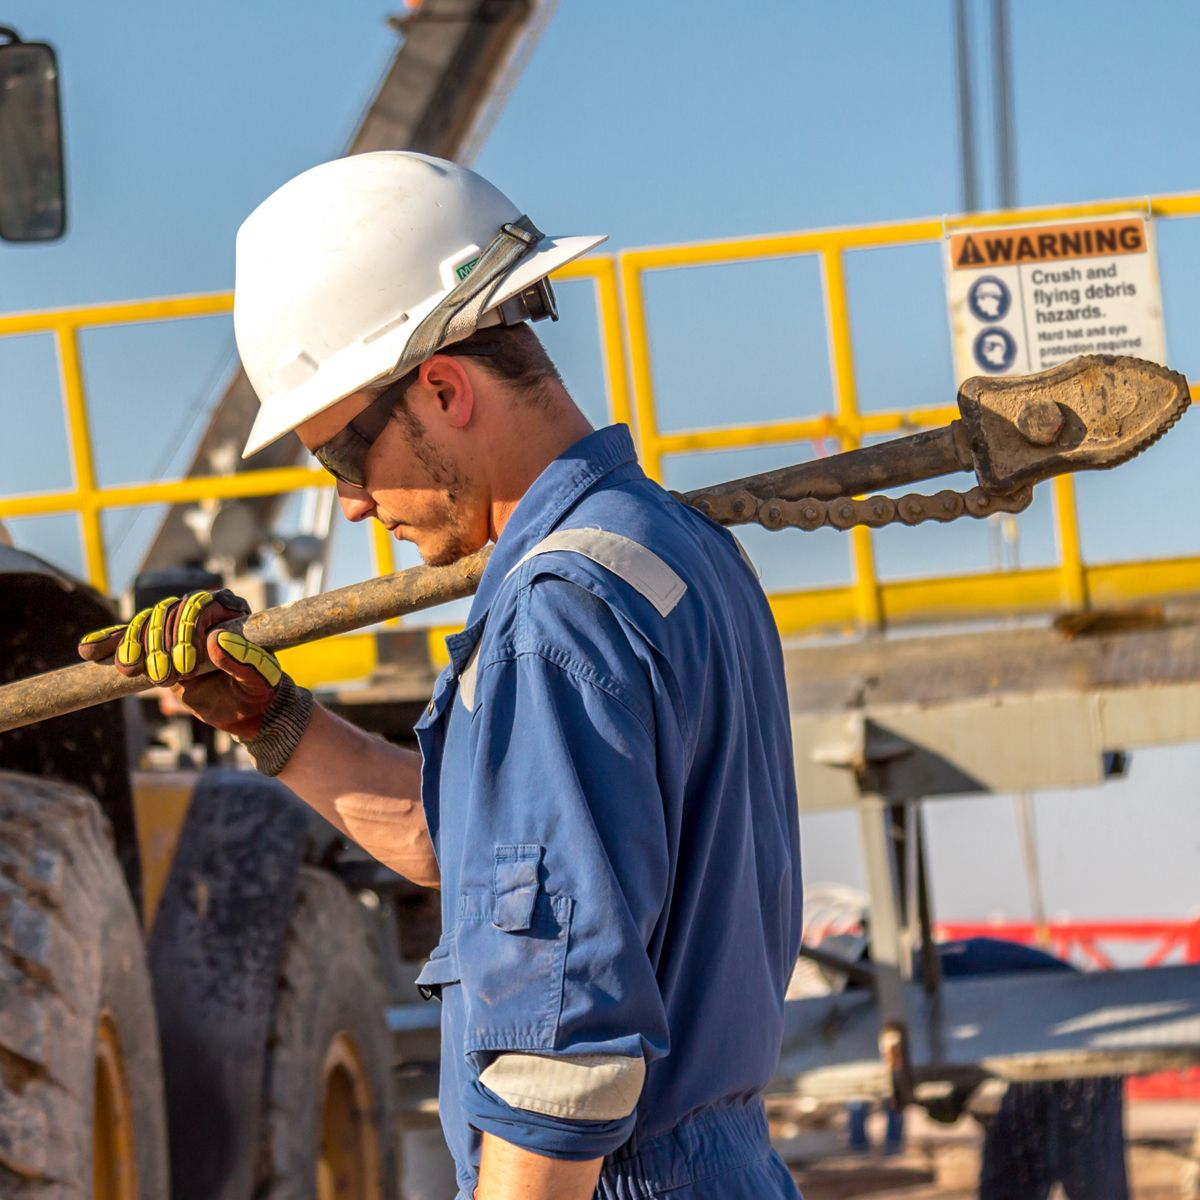 10 tips to improve worker safety on your next oil and gas